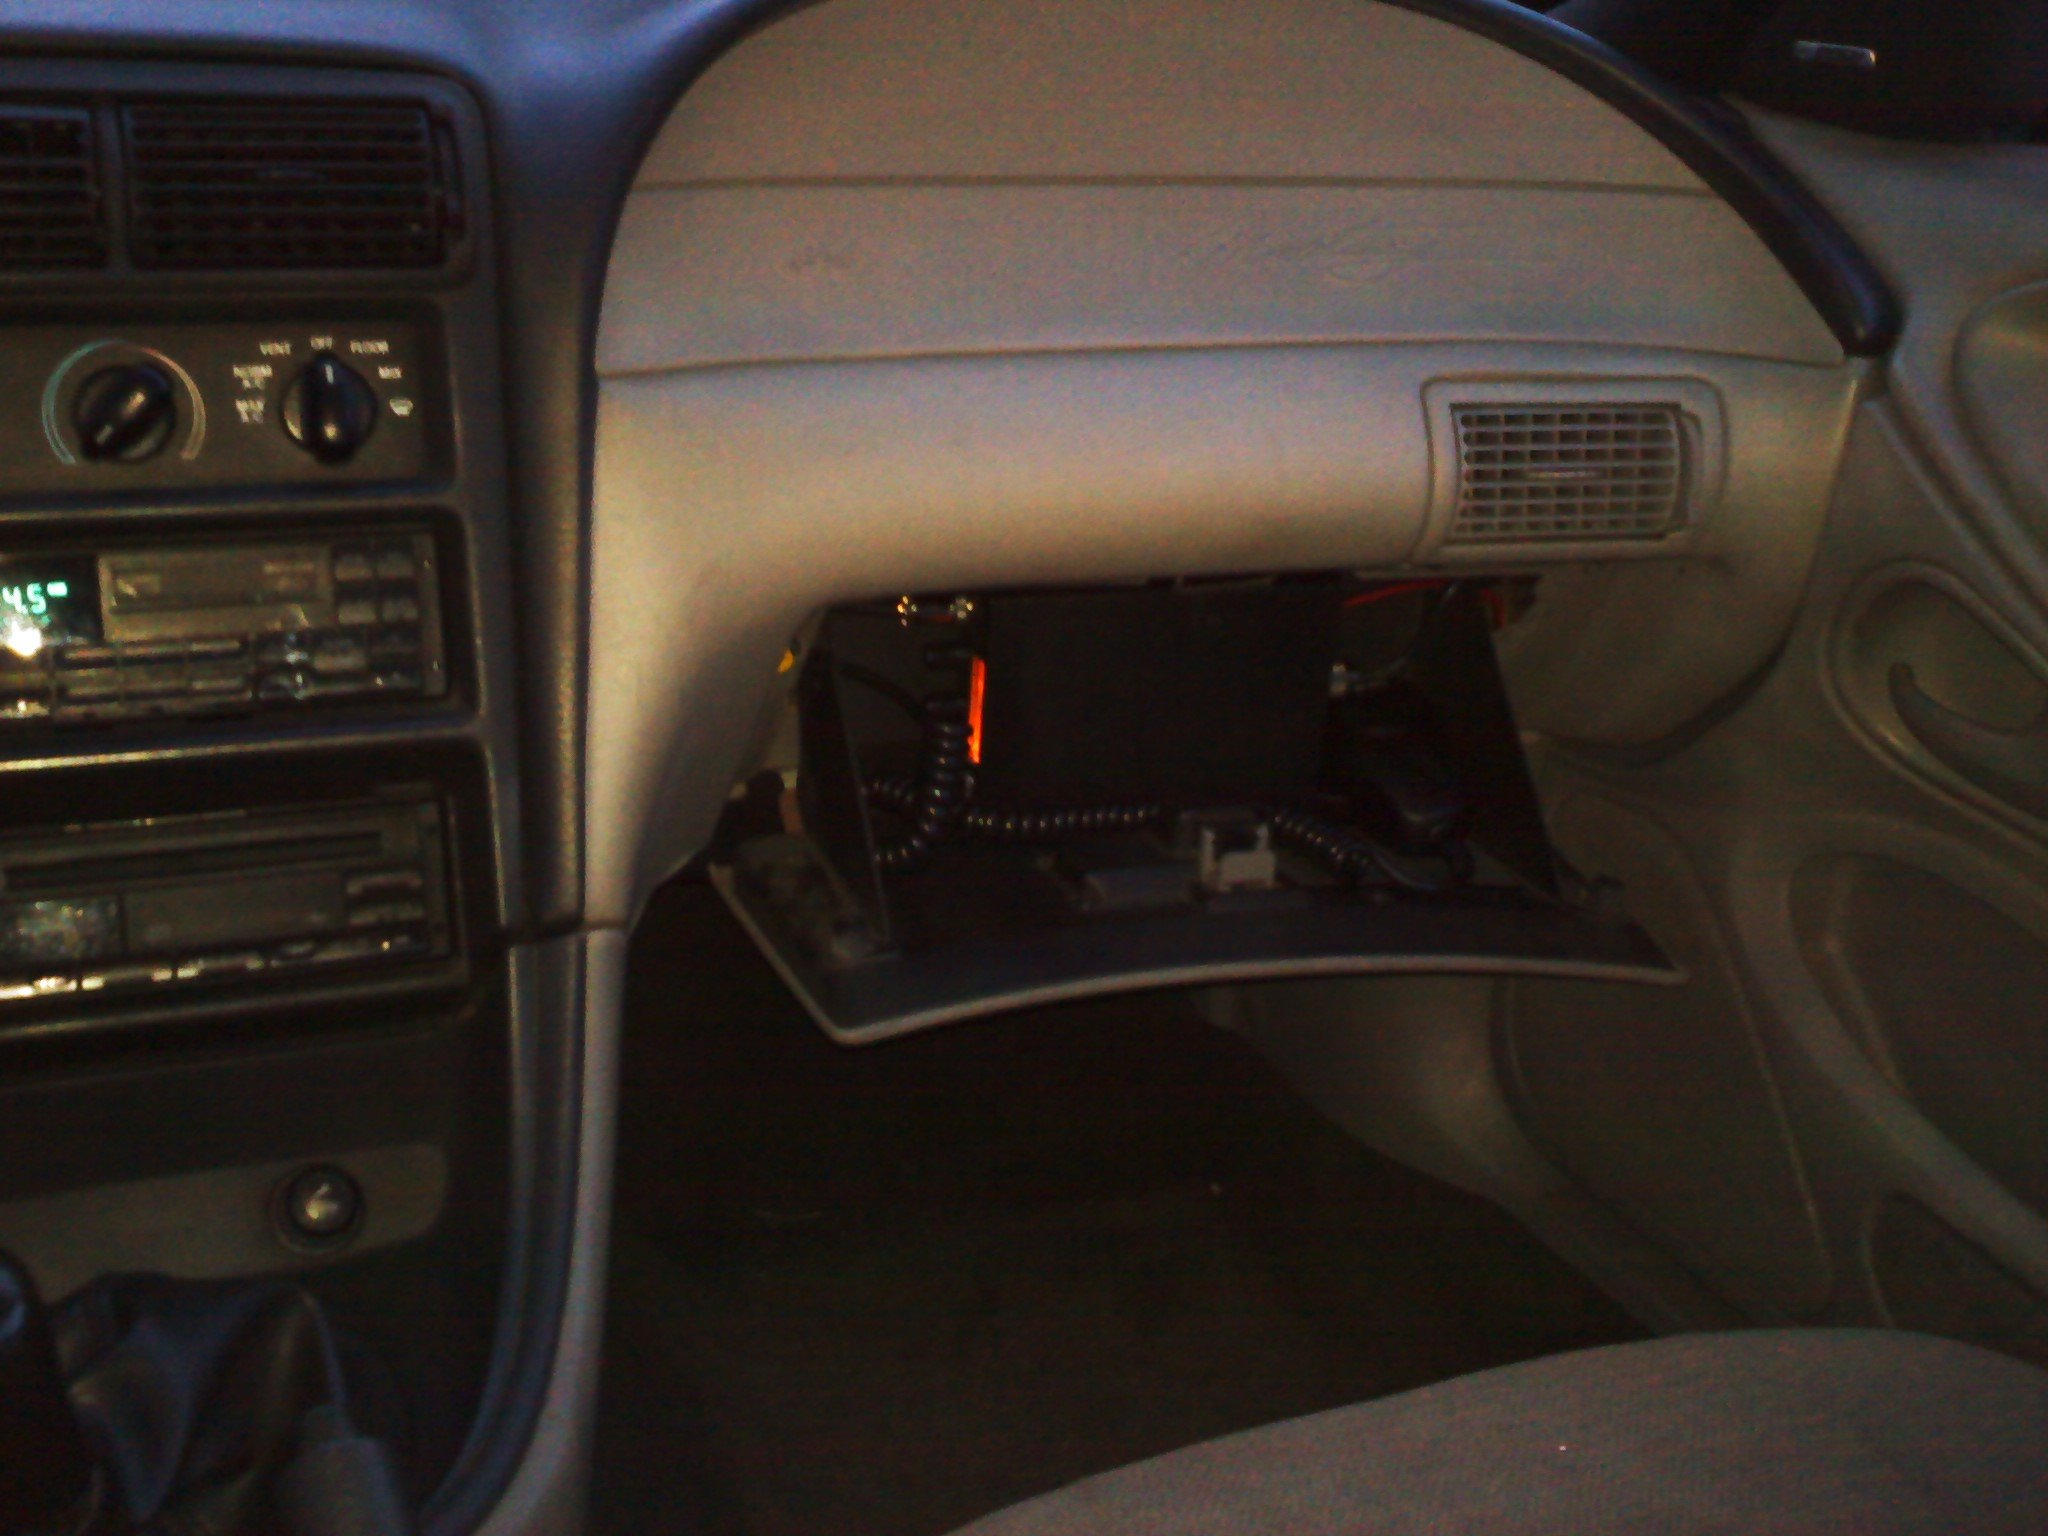 2000 Mustang Cb Radio Fuse Box Touble